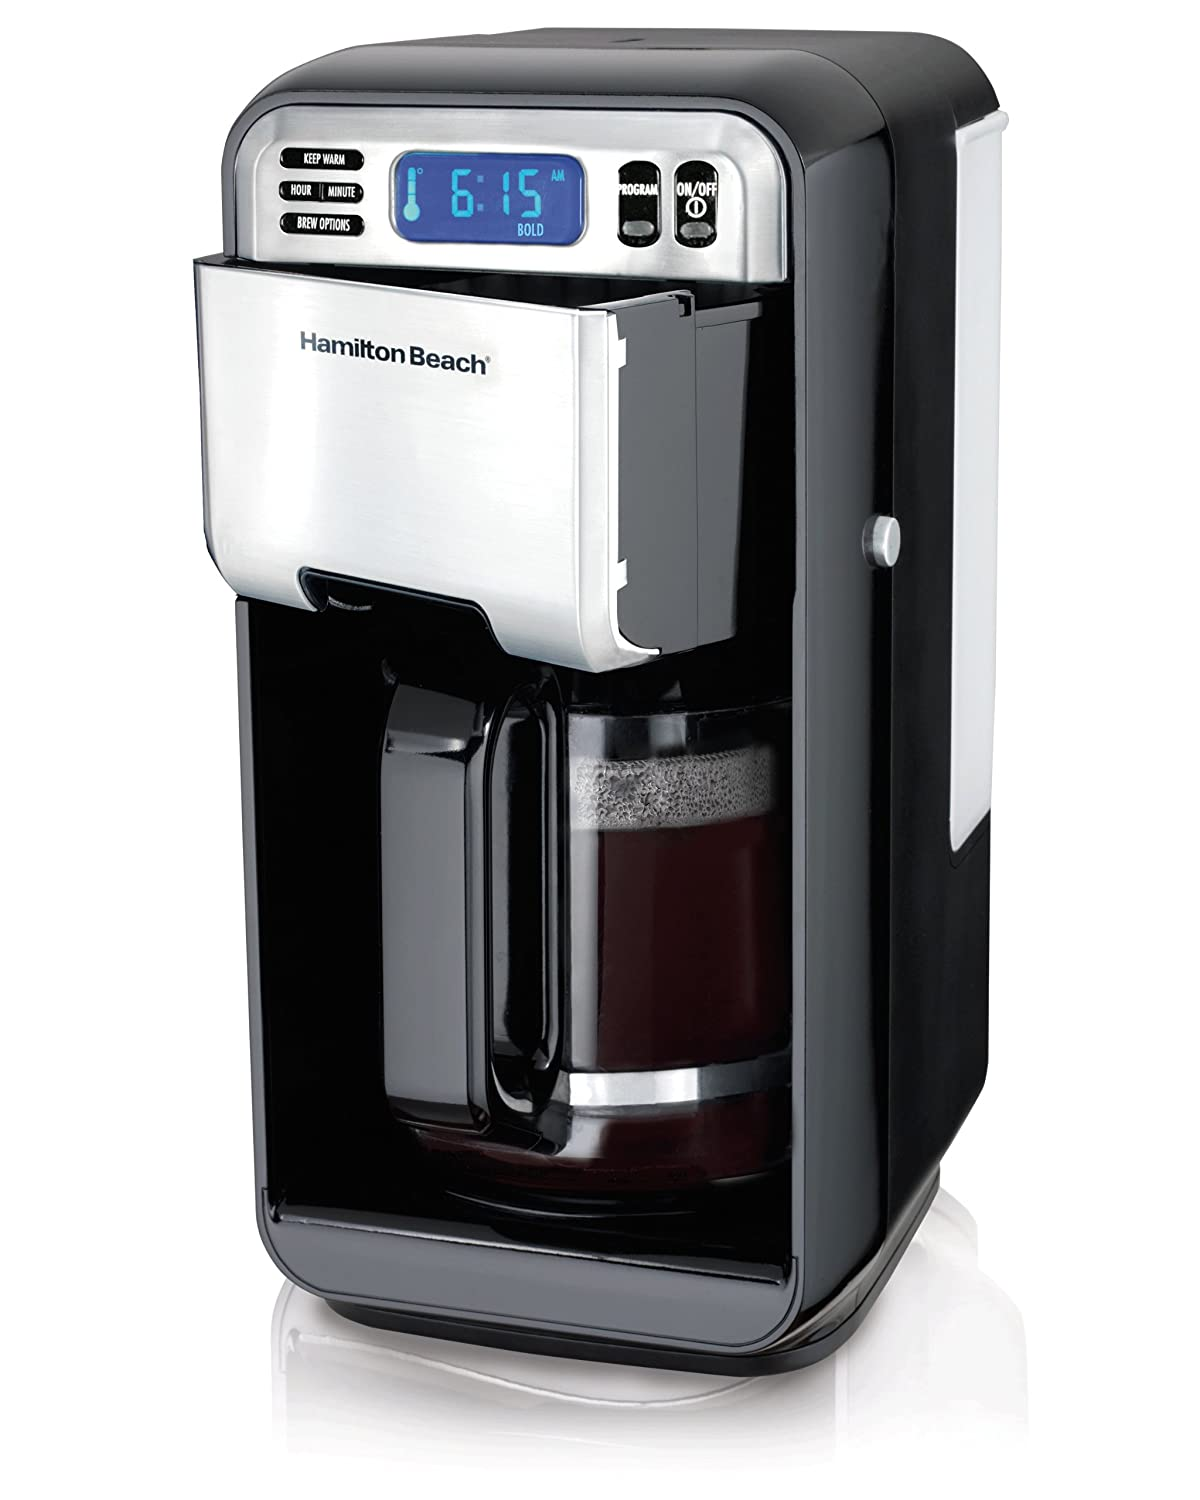 Amazon.com: Hamilton Beach 12-Cup Digital Coffee Maker, Stainless ...